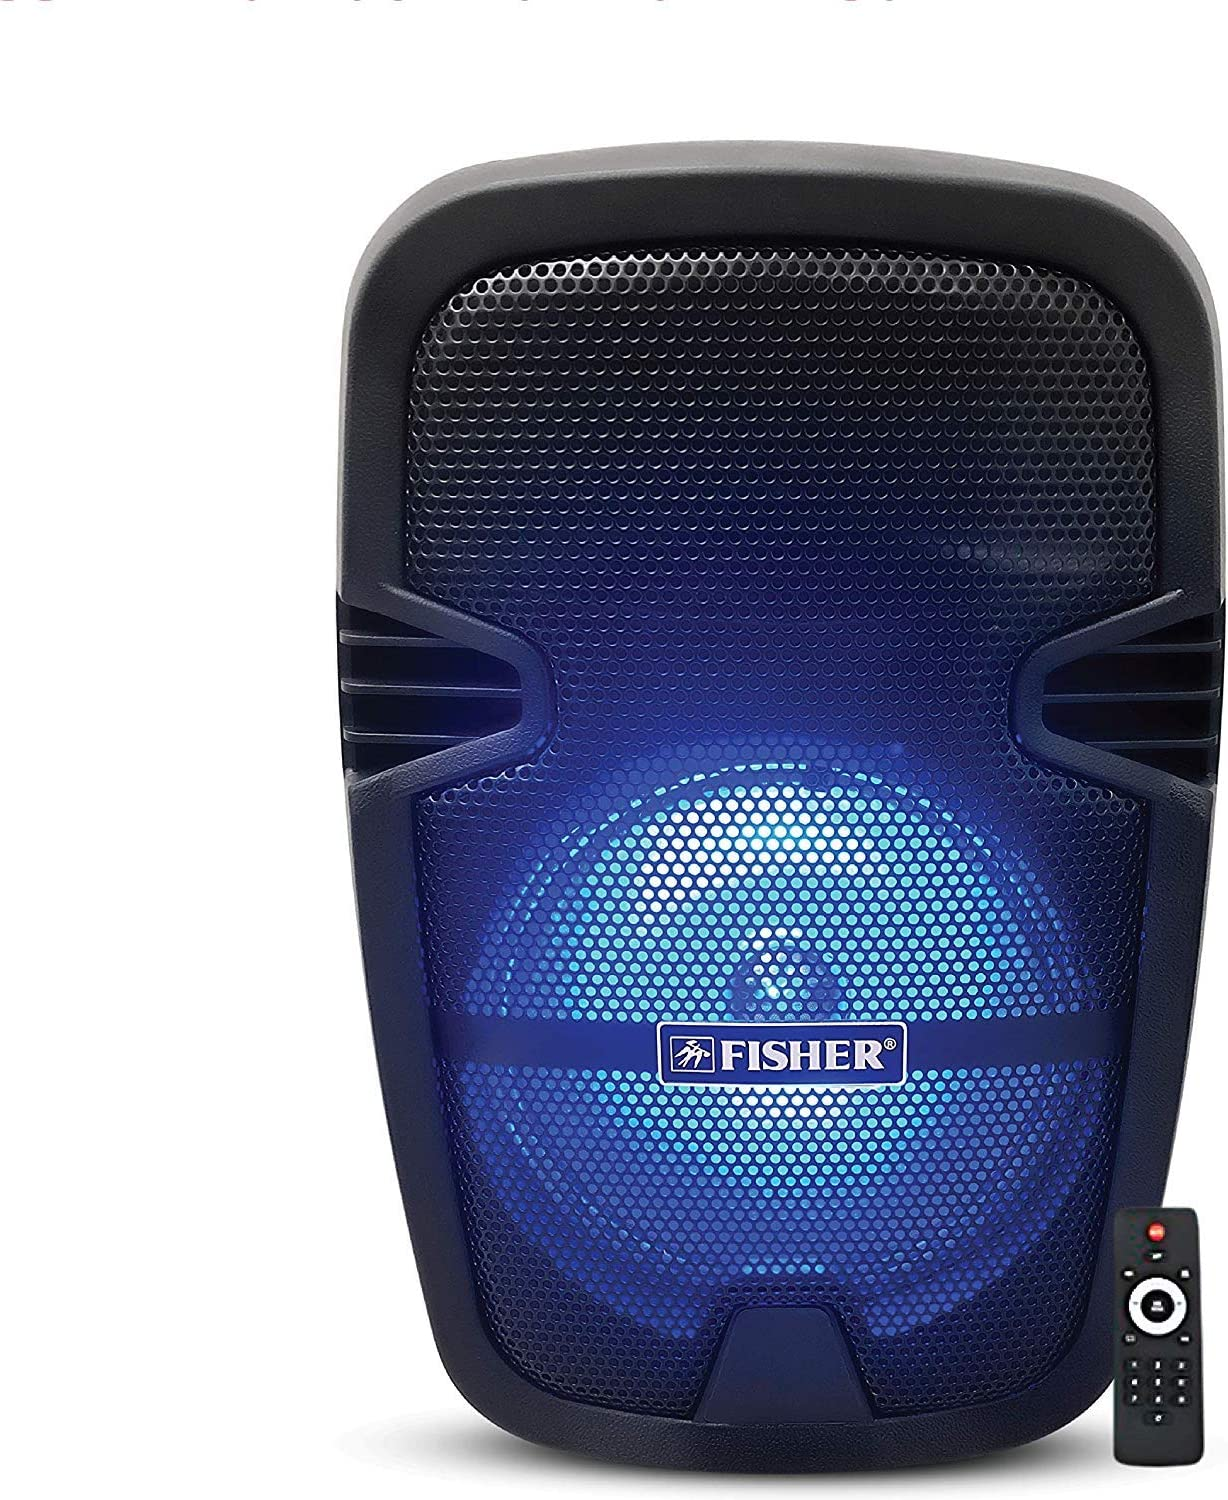 Fisher FBX822 8-Inch Compact PA System, Bluetooth, Rechargeable Speaker with Remote Control, Colorful Light FX, Karaoke Microphone Input, FM Radio, Aux/USB/TF Input